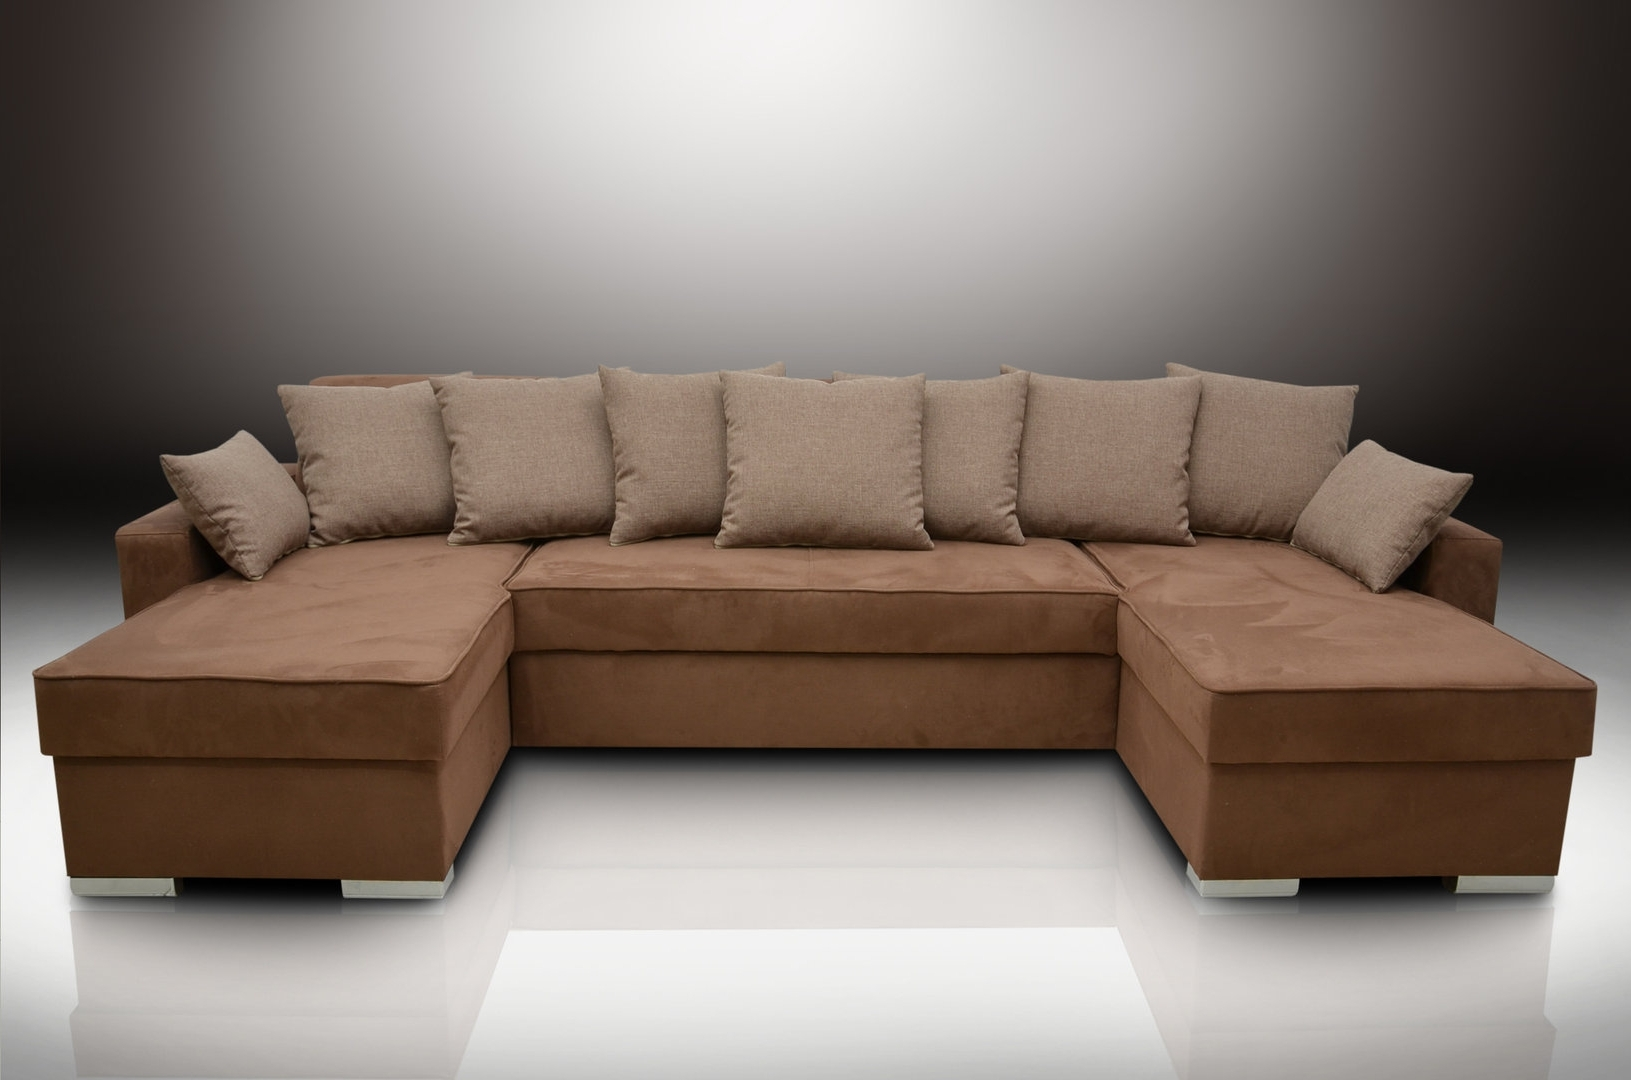 Latest Faux Suede Sofas Inside Chaise Corner Sofa Bed Group Duke, Brown Faux Suede / Linen Look (View 11 of 20)